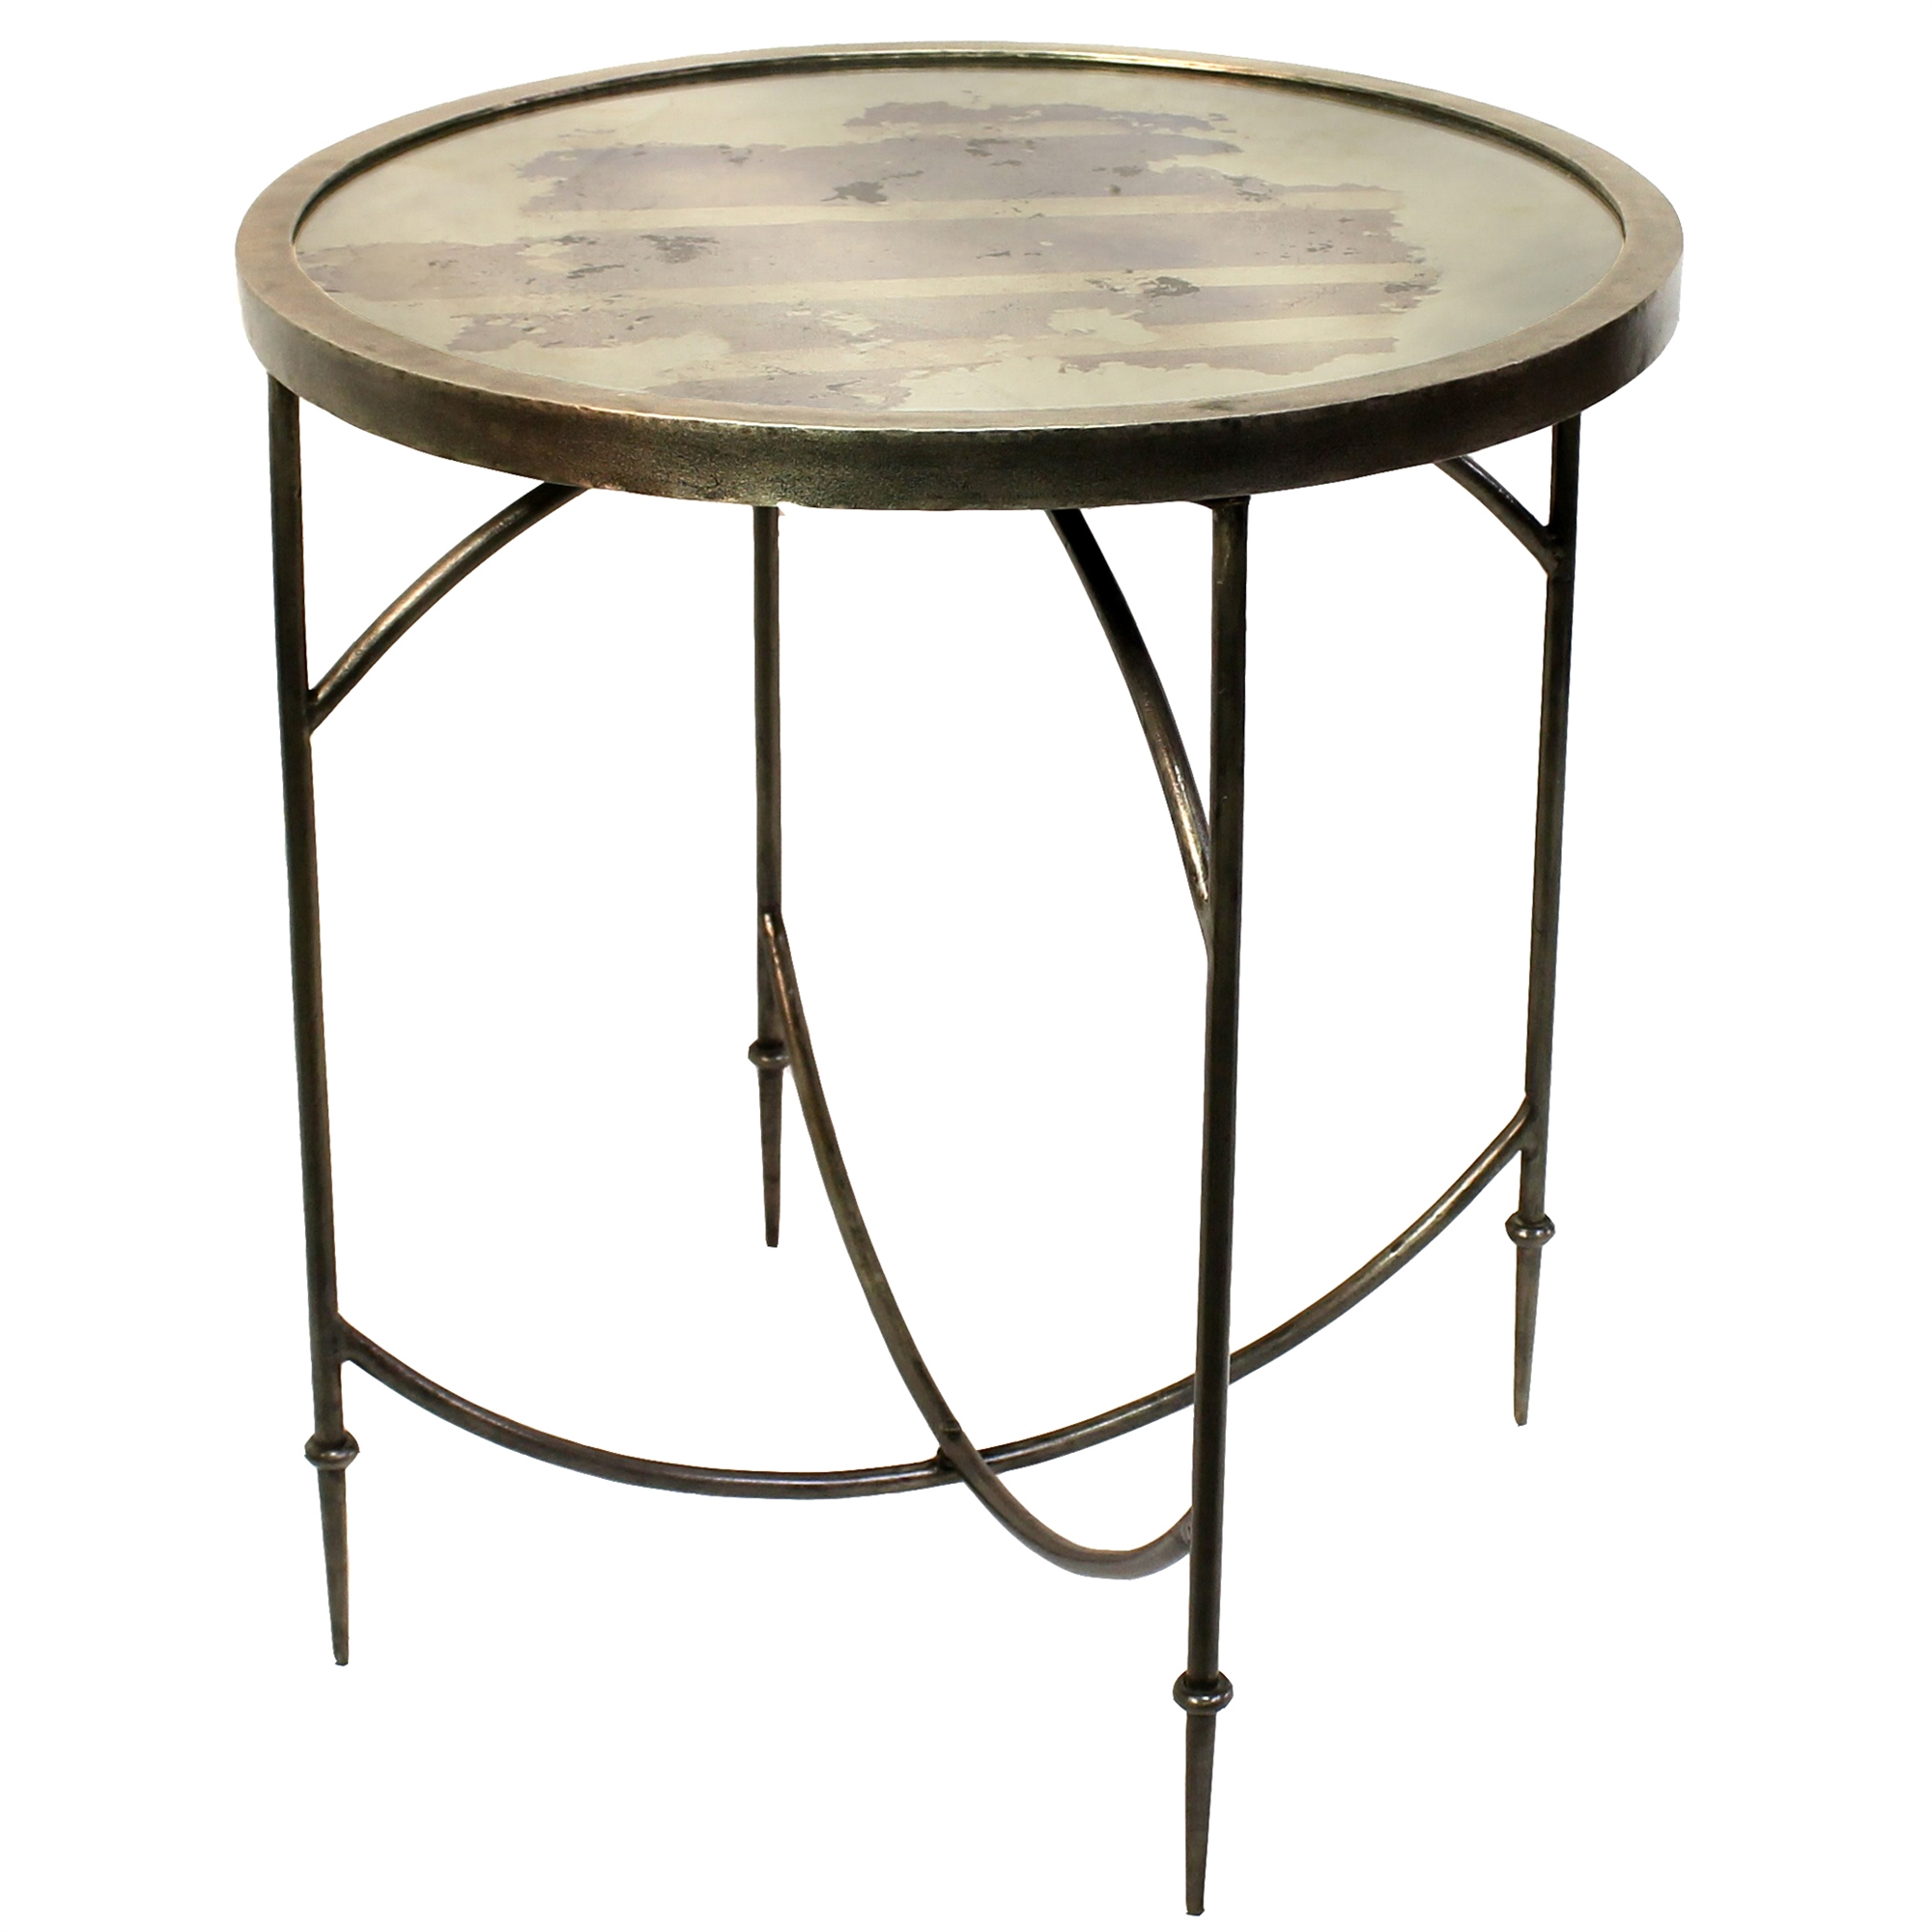 Carrefour Table Small Carrefour Mirrored Side Table By Homart